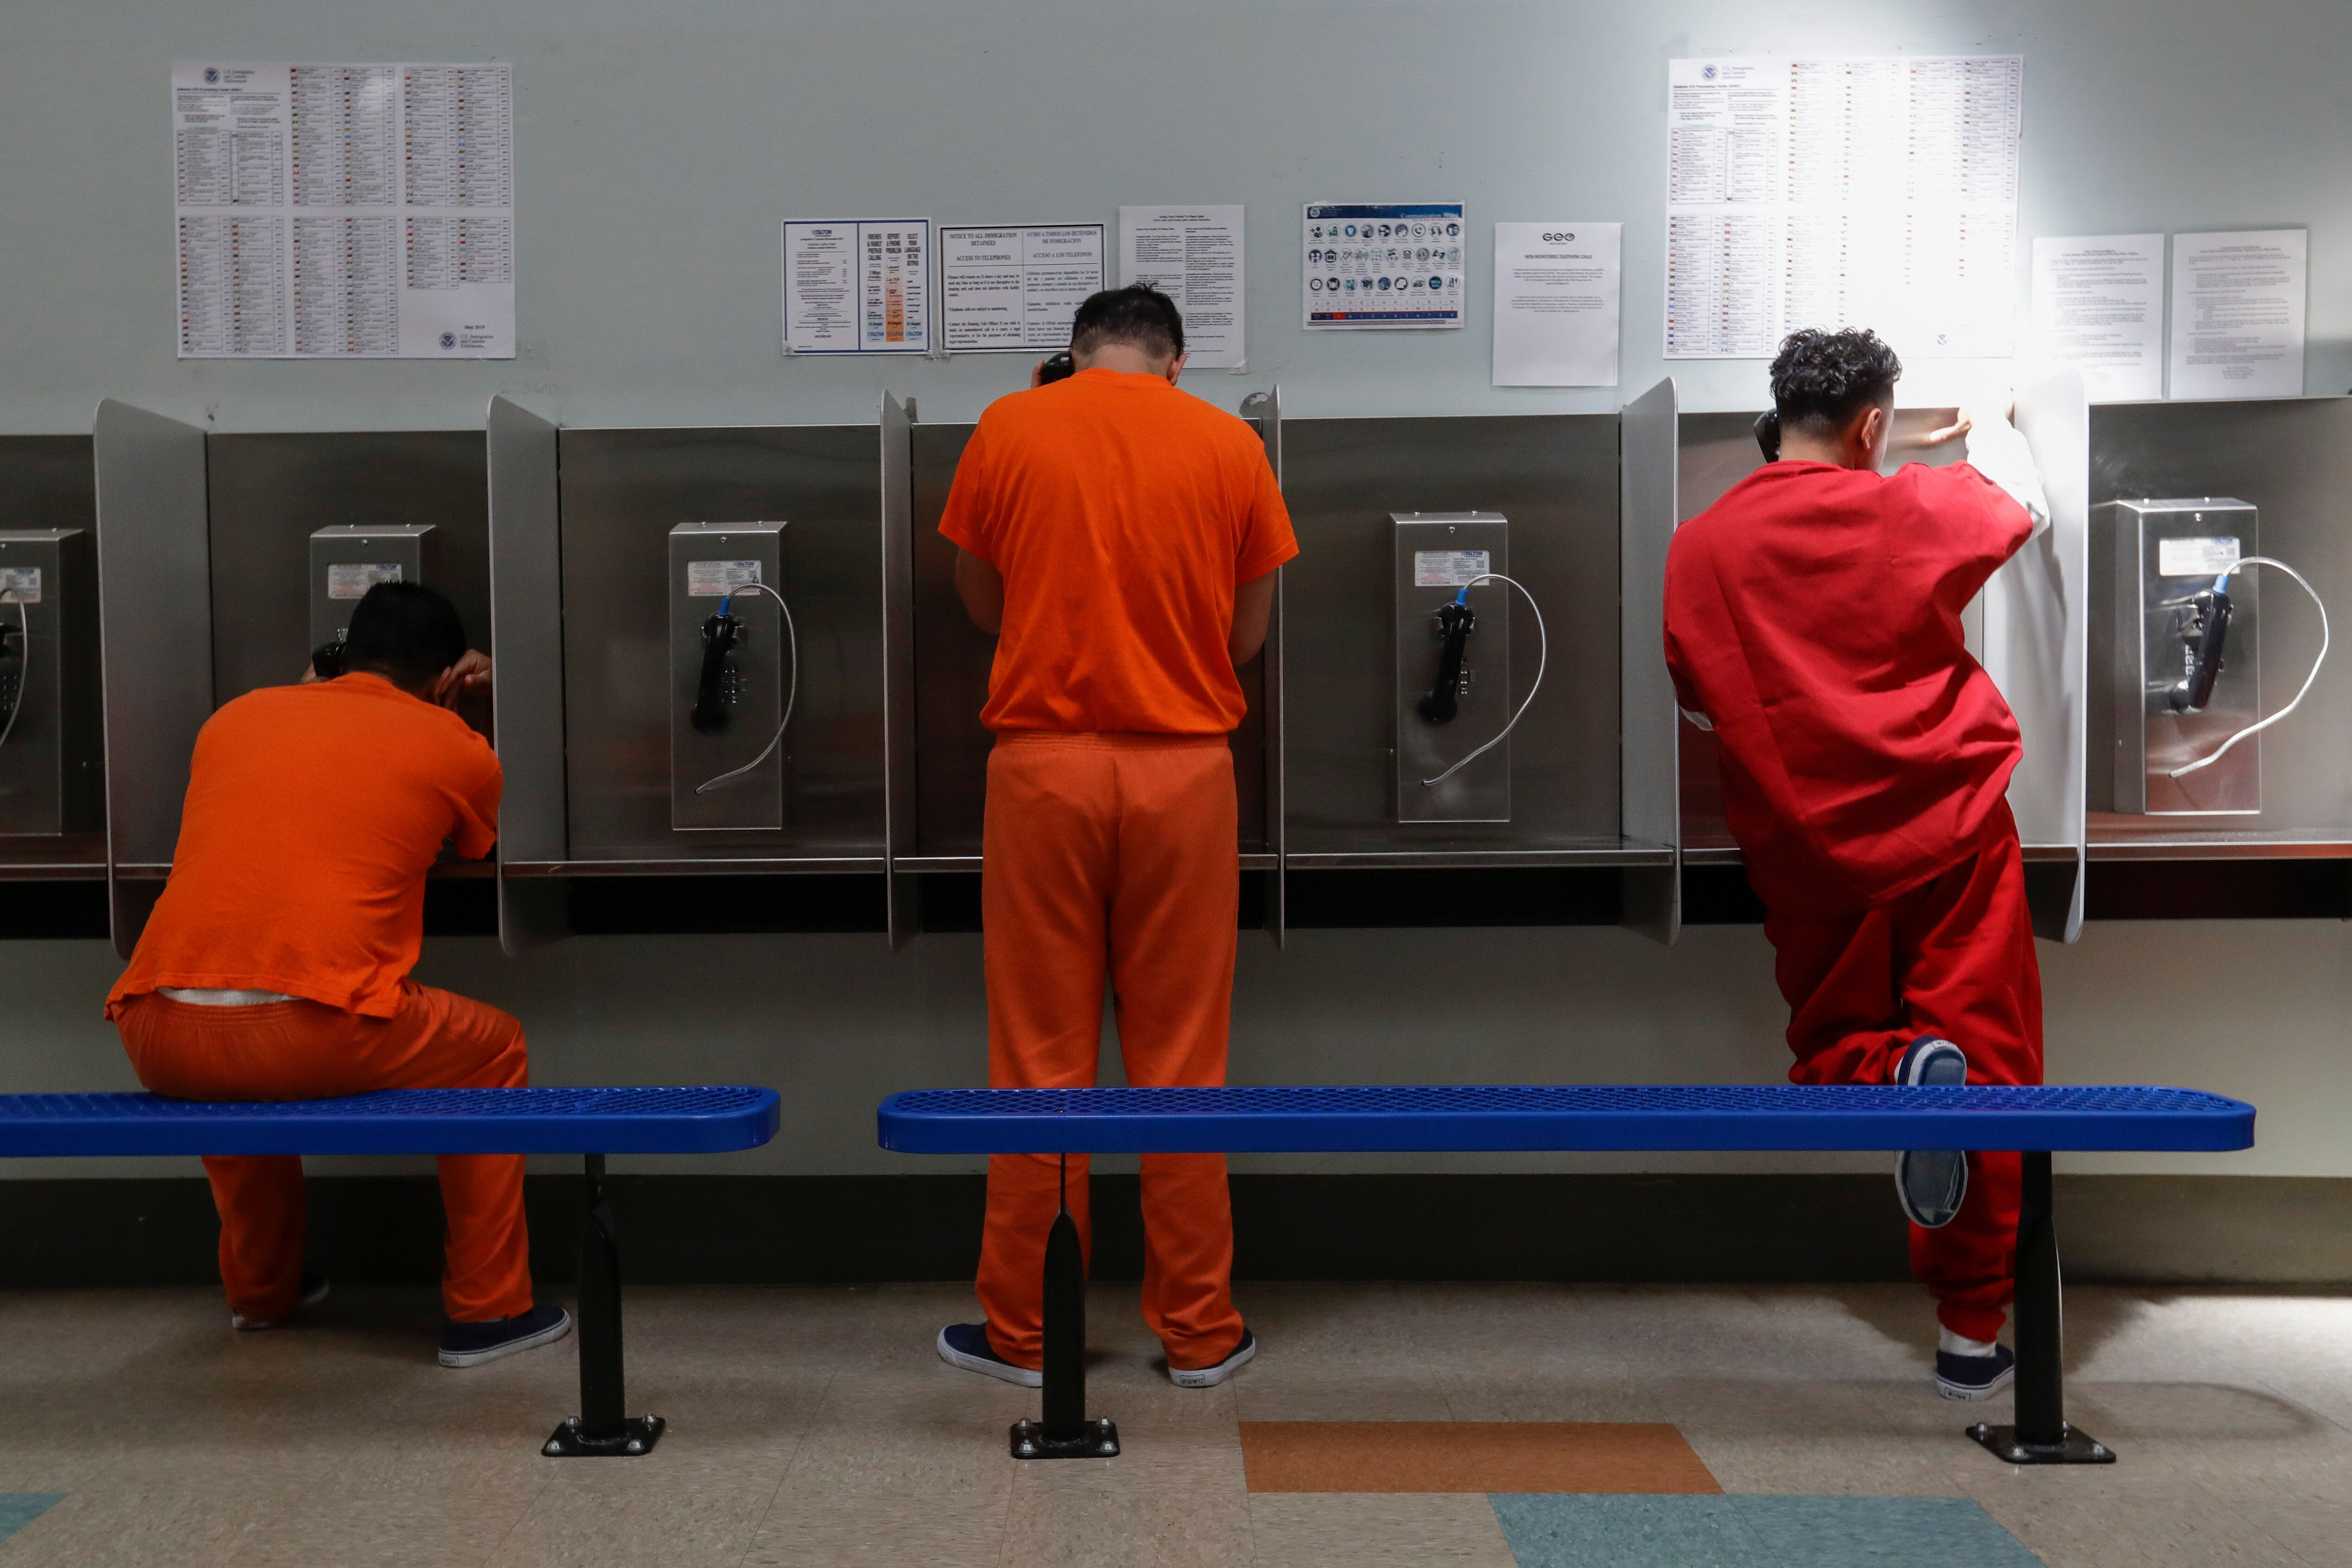 Detainees talk on the phones at the Adelanto ICE Processing Center in Adelanto, Calif. on Aug. 28, 2019.